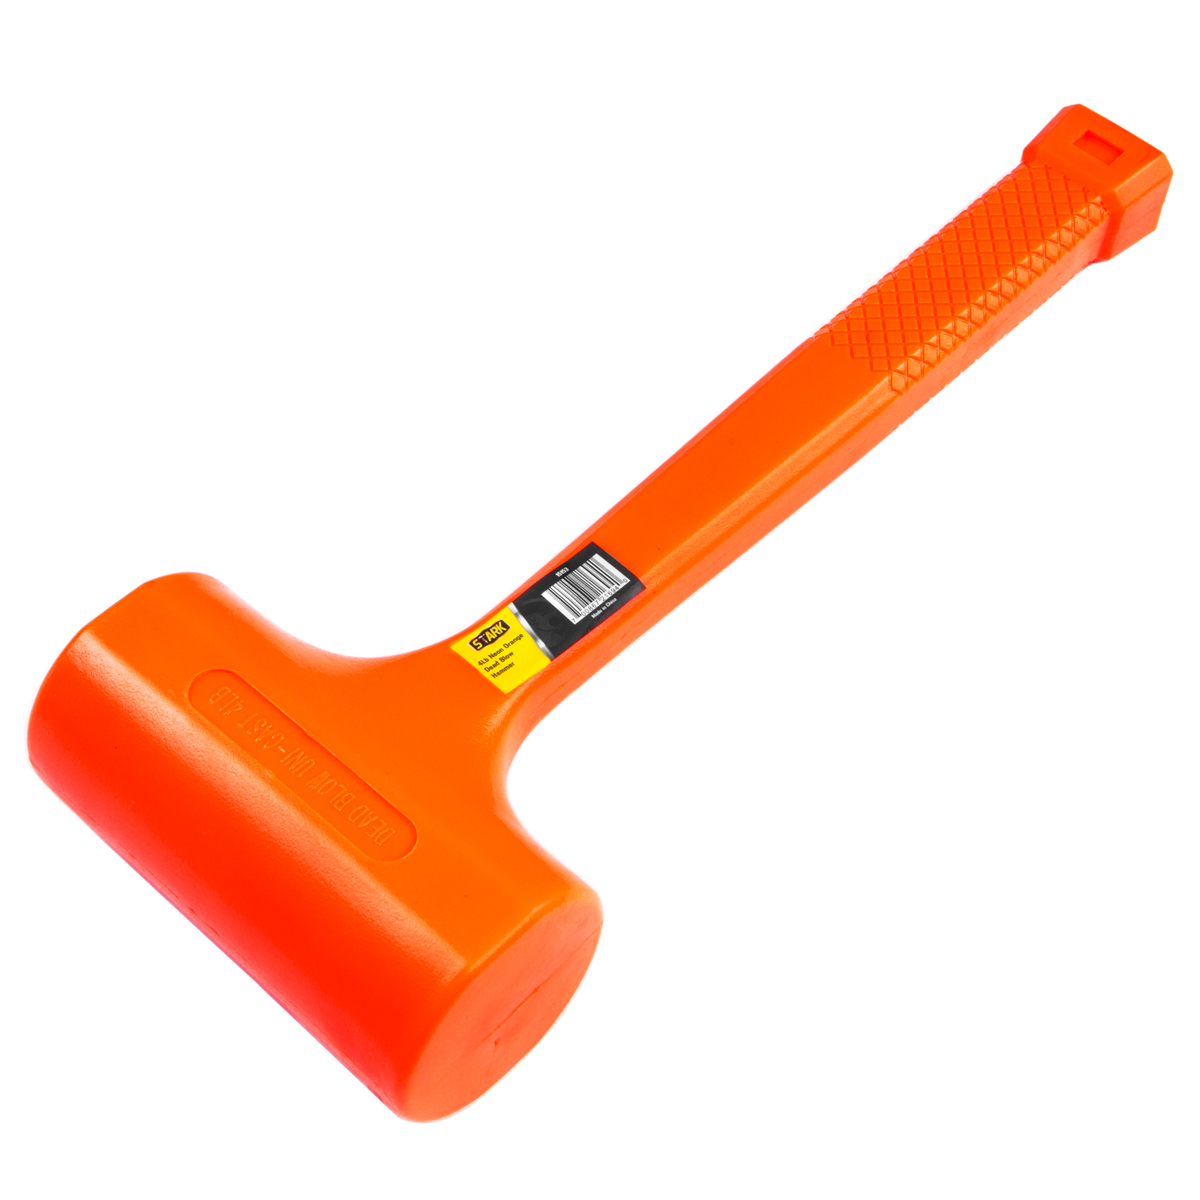 Dead Blow Hammer 4 Lb Pounds Mallet Headblow Hammer Absorbing W Non Slip Handle 974882307734 Ebay 3 lb dead blow hammer, neon orange, spark and rebound resistant. details about dead blow hammer 4 lb pounds mallet headblow hammer absorbing w non slip handle